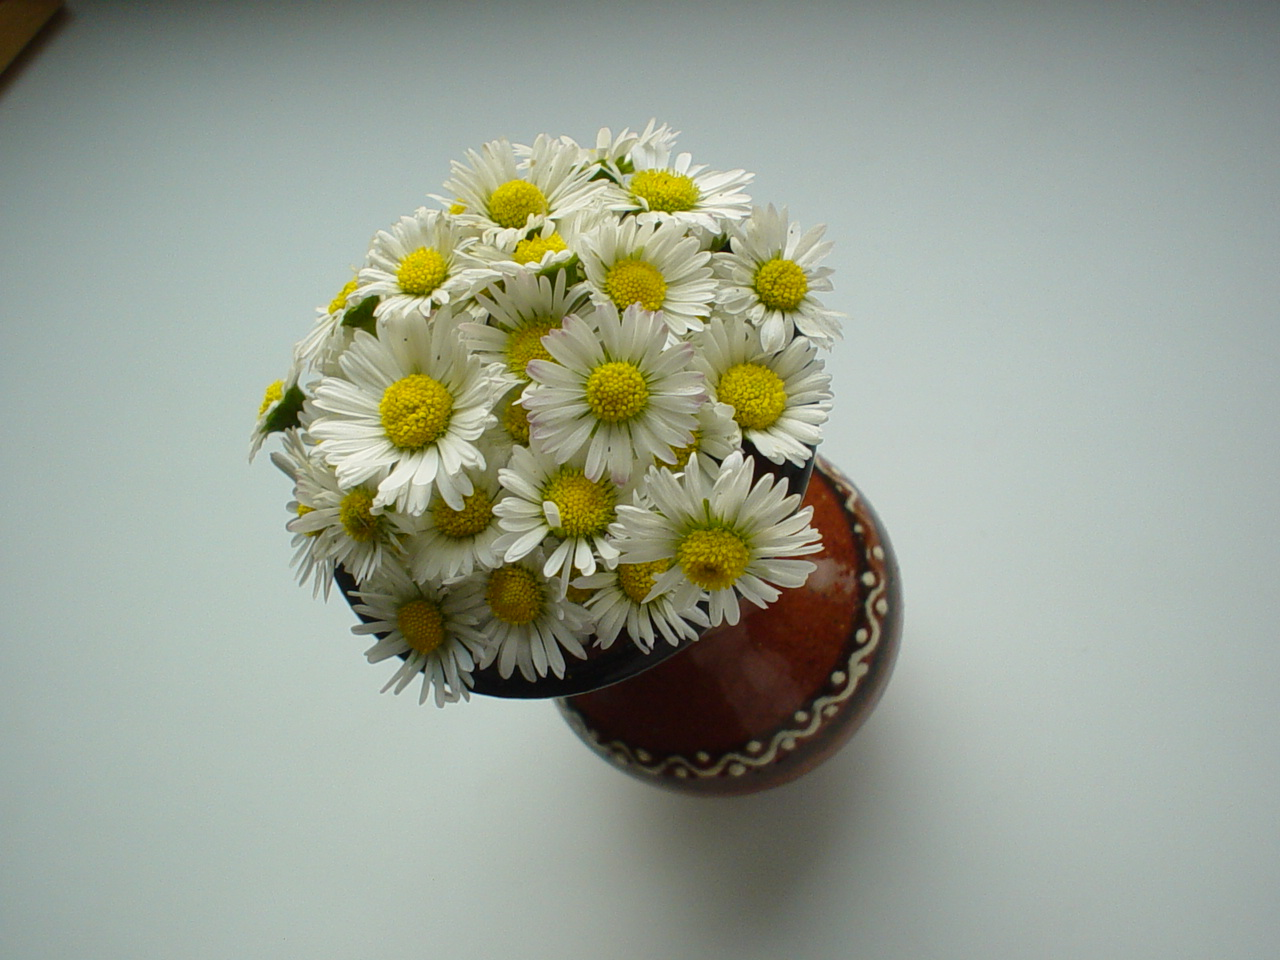 What's not to love about daisies?